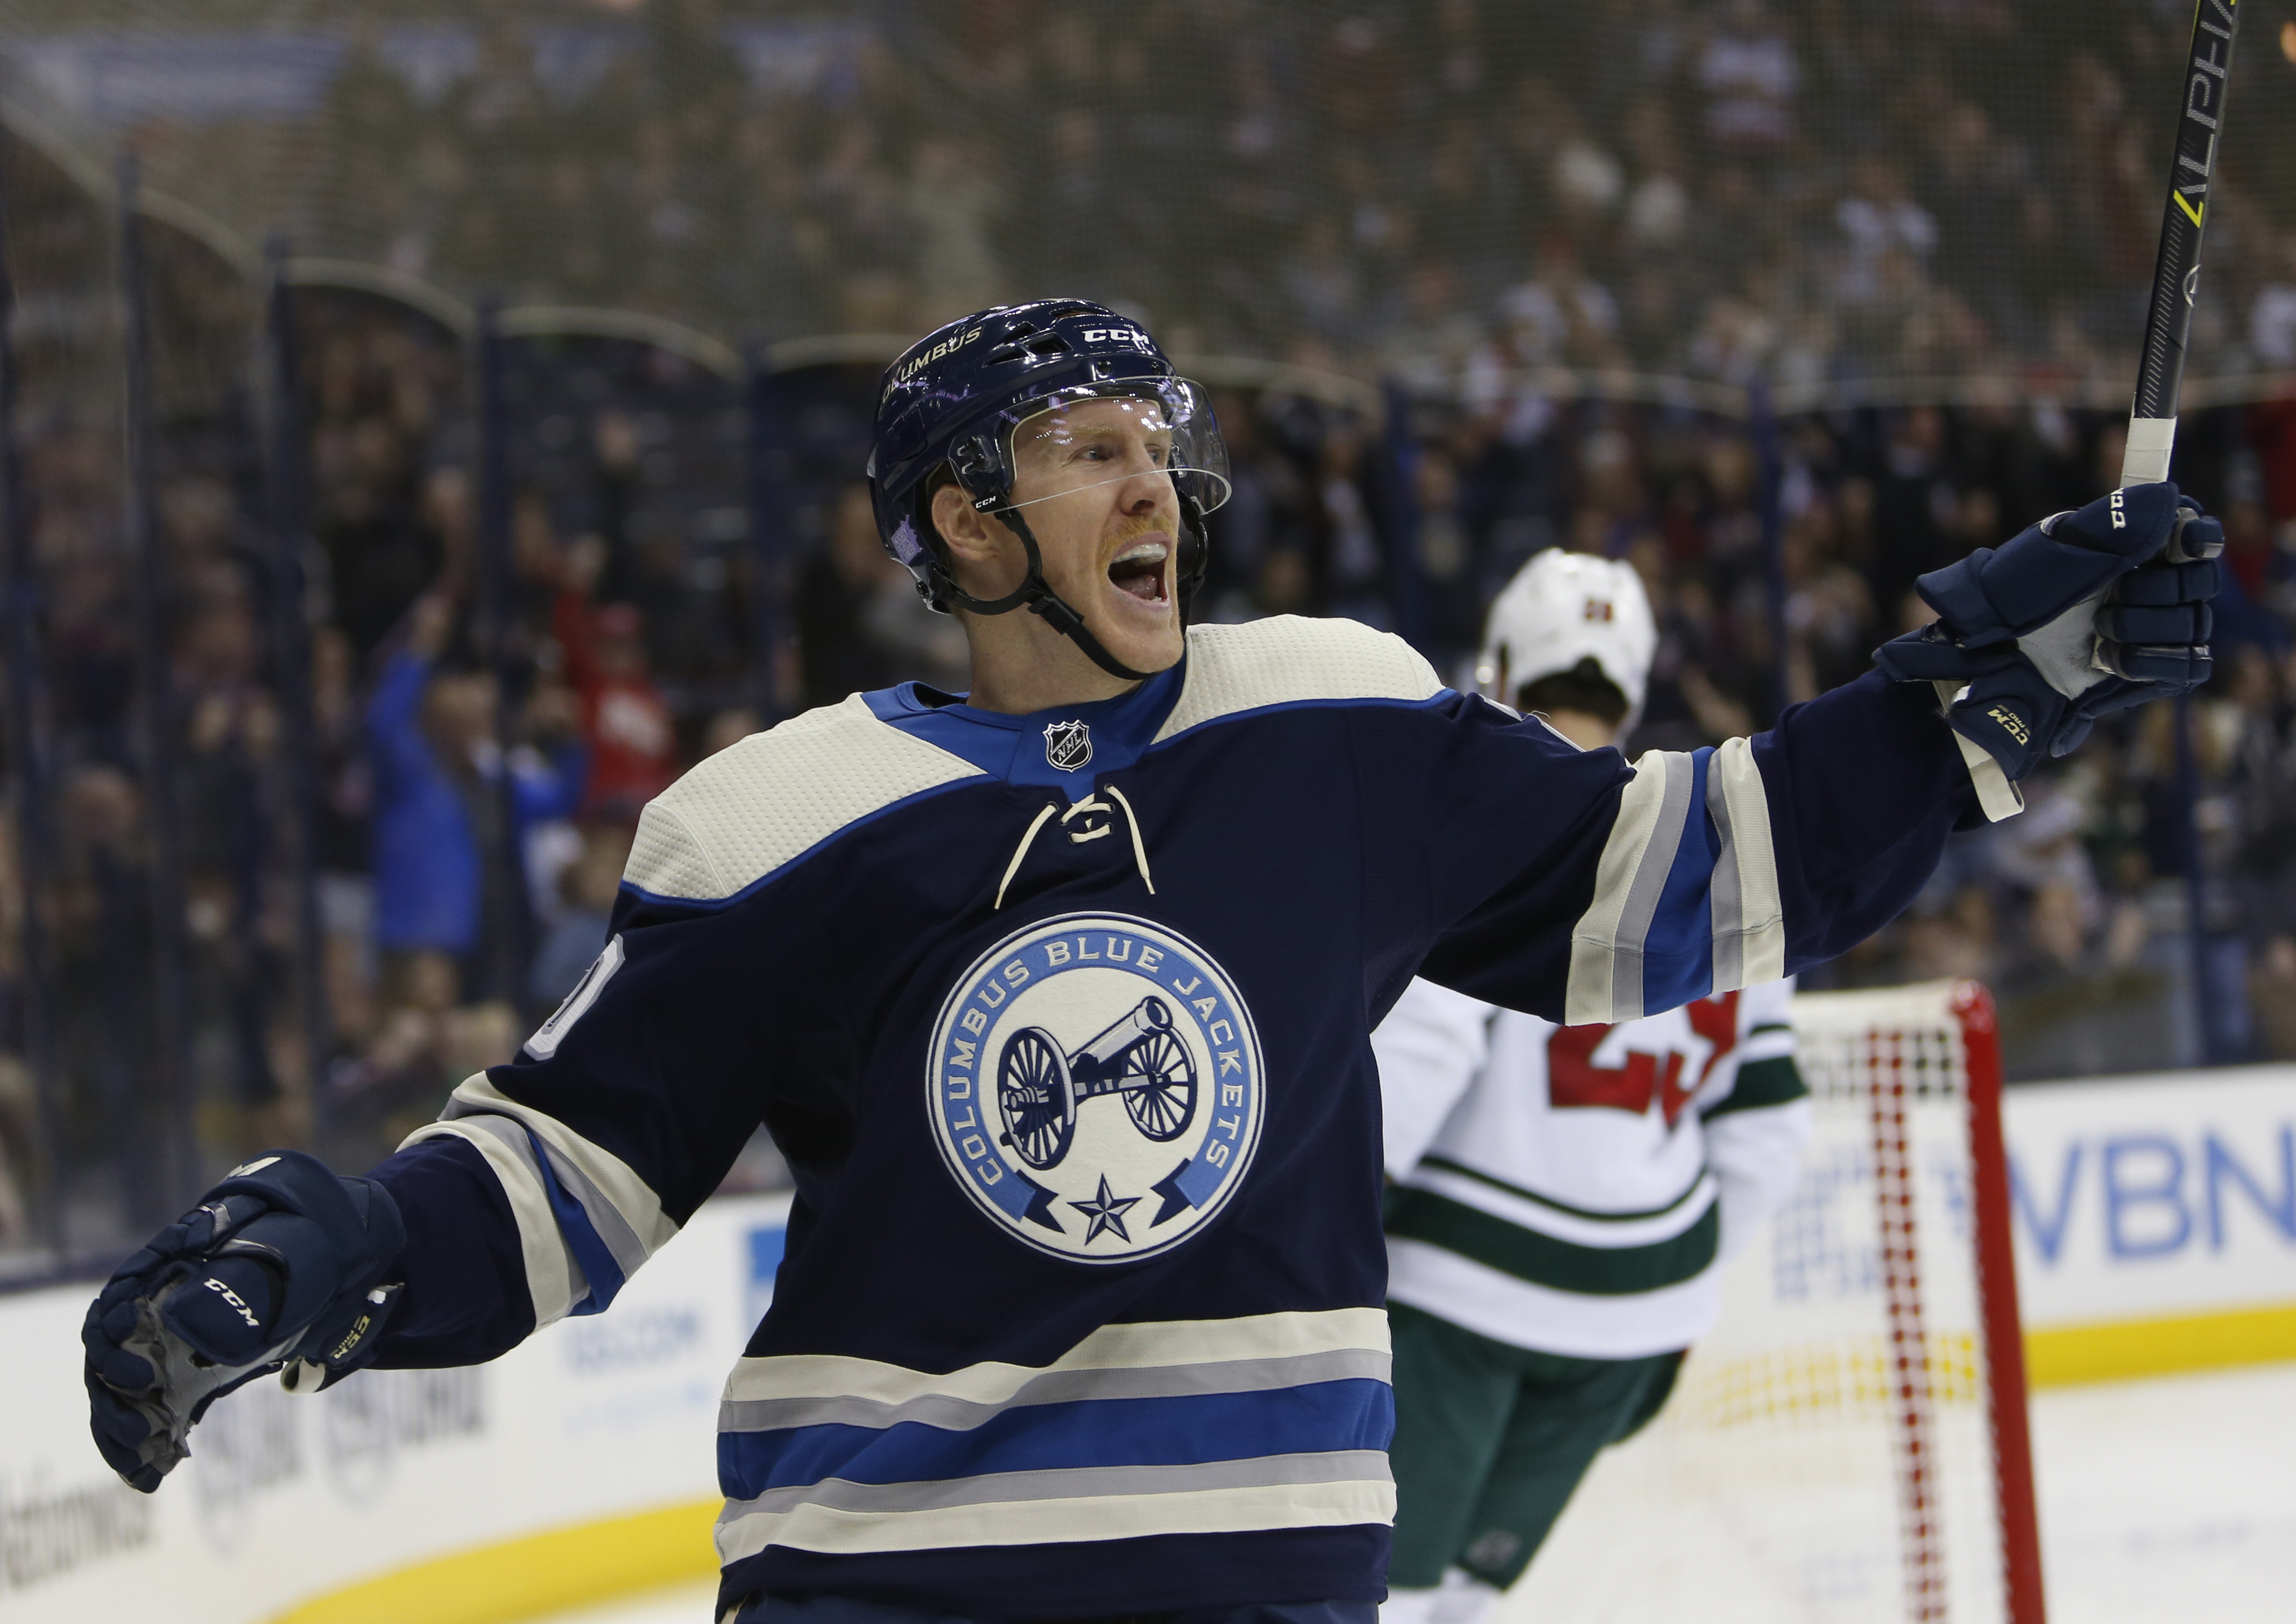 Nash notches goal and assist as Blue Jackets beat Wild 4-2